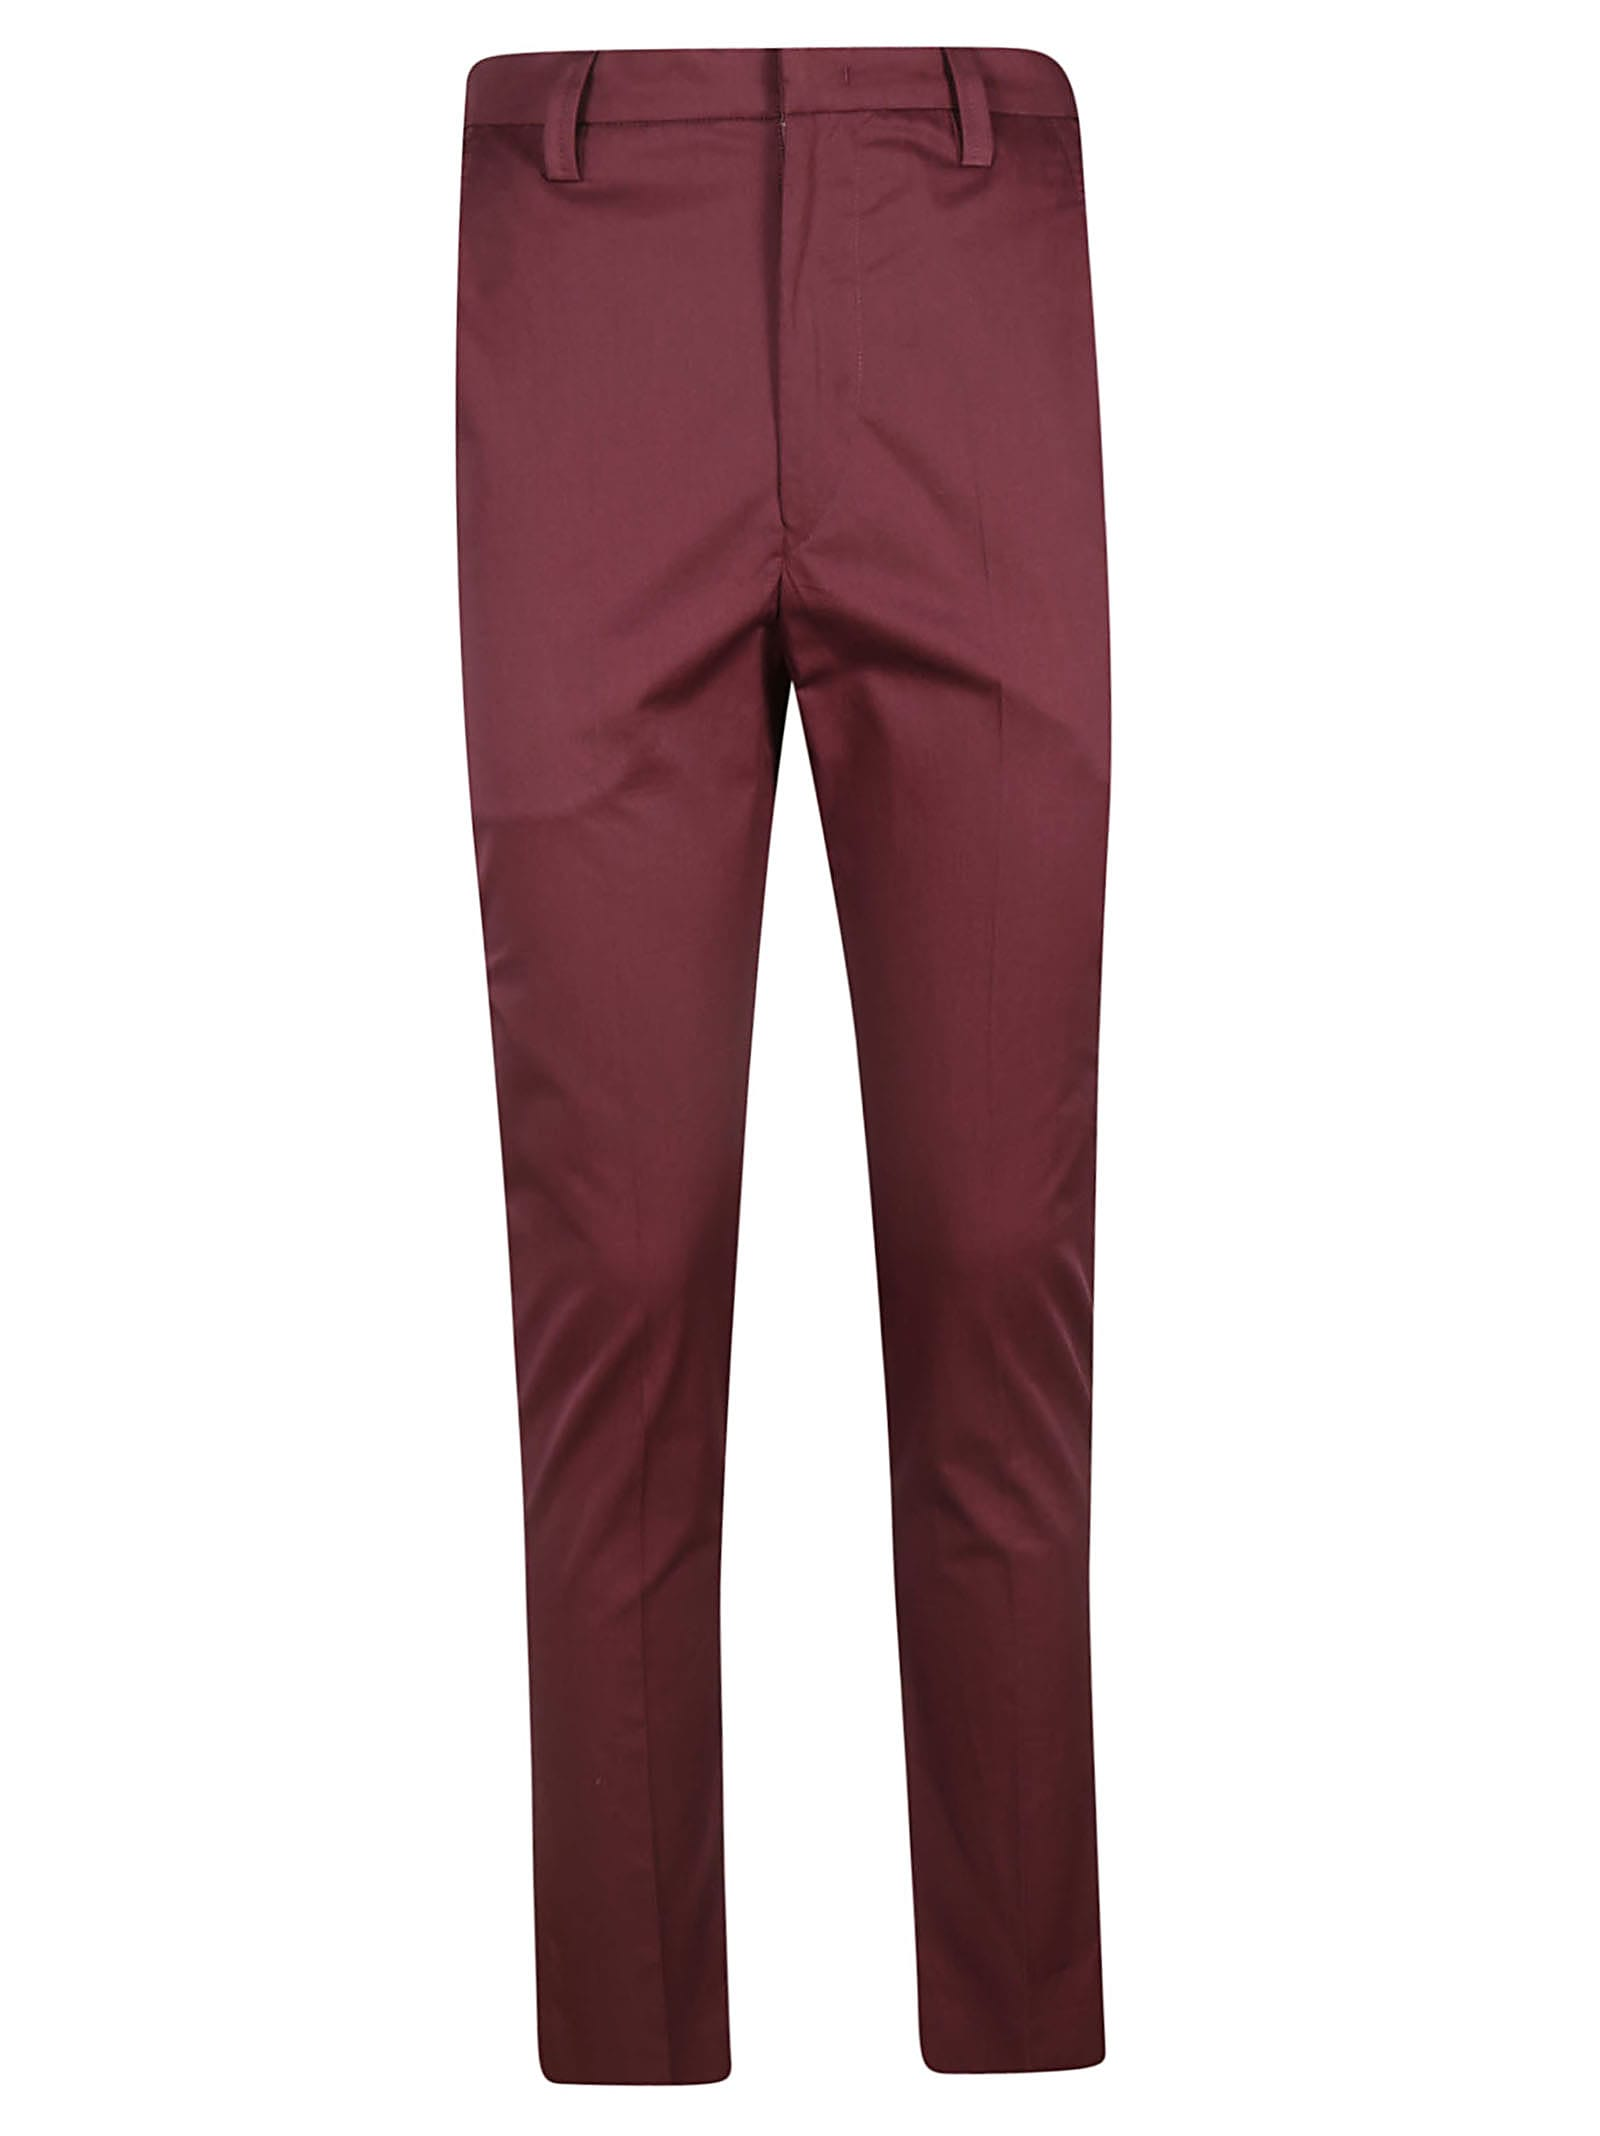 Isabel Marant Slim Fit Trousers